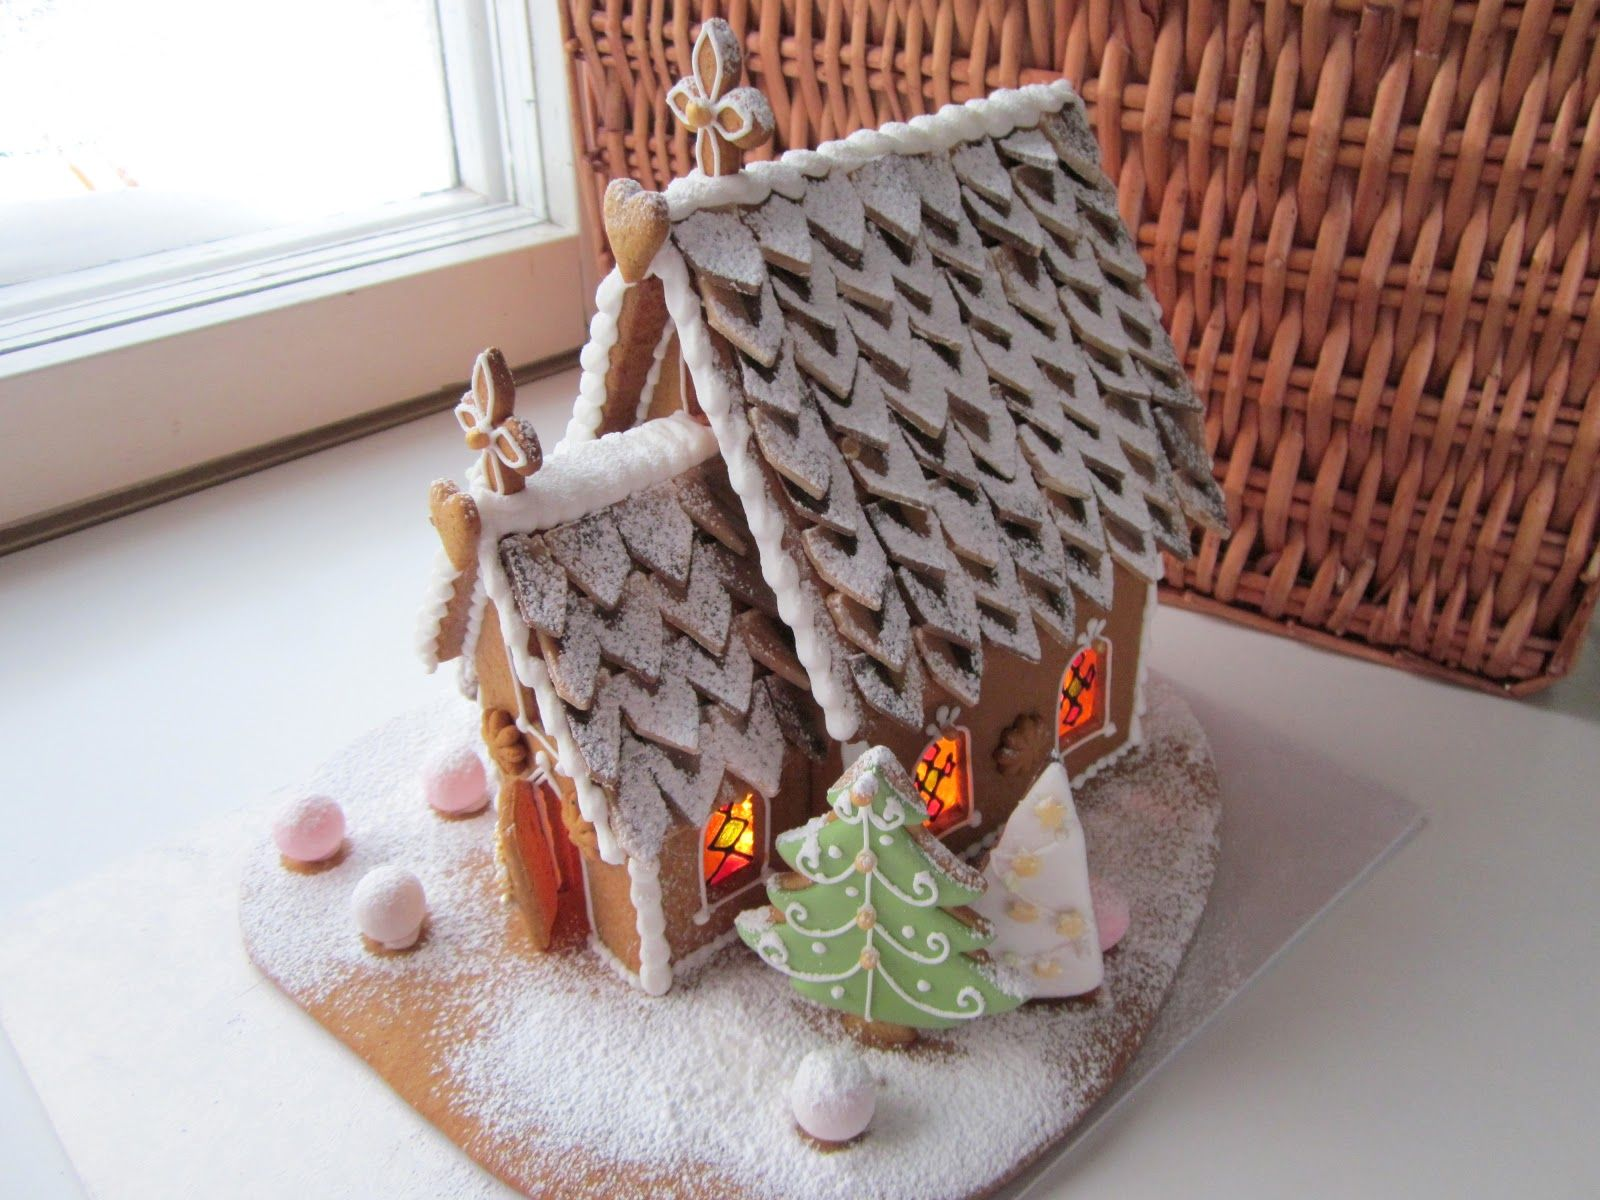 gingerbread house, cookie house, Christmas house | Gingerbread House on church cakes, church family house, church snow, church autumn, church candy, church cupcakes, church country gingerbread recipe,